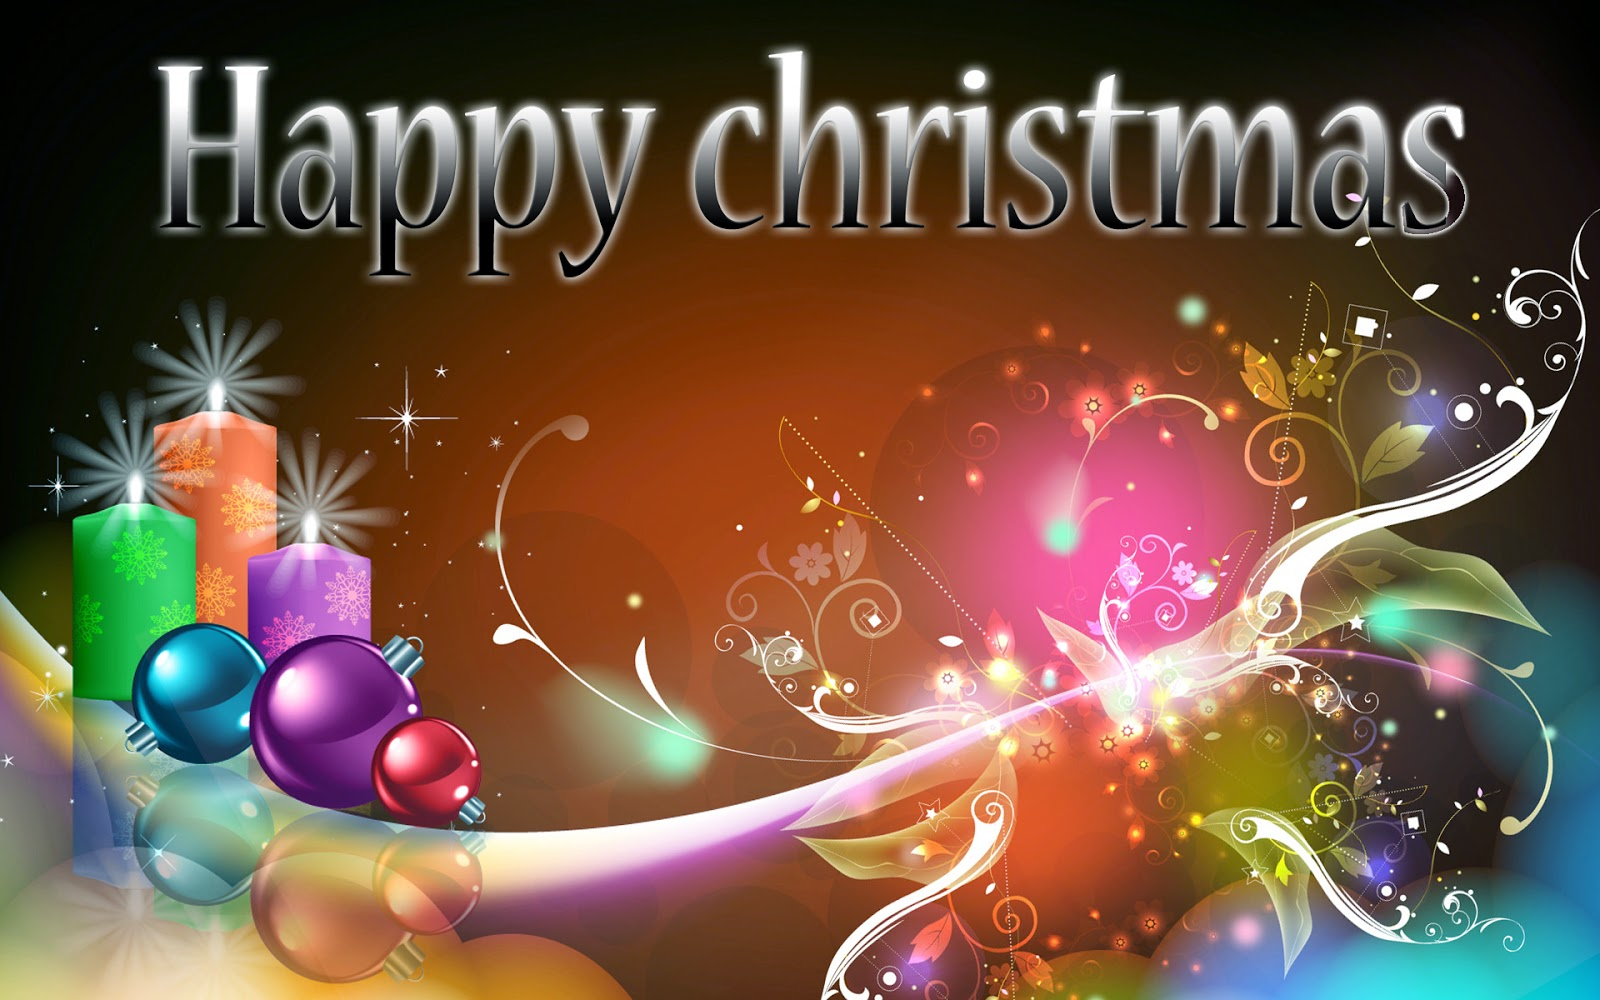 Marry Christmas HD Wallpaper 2014